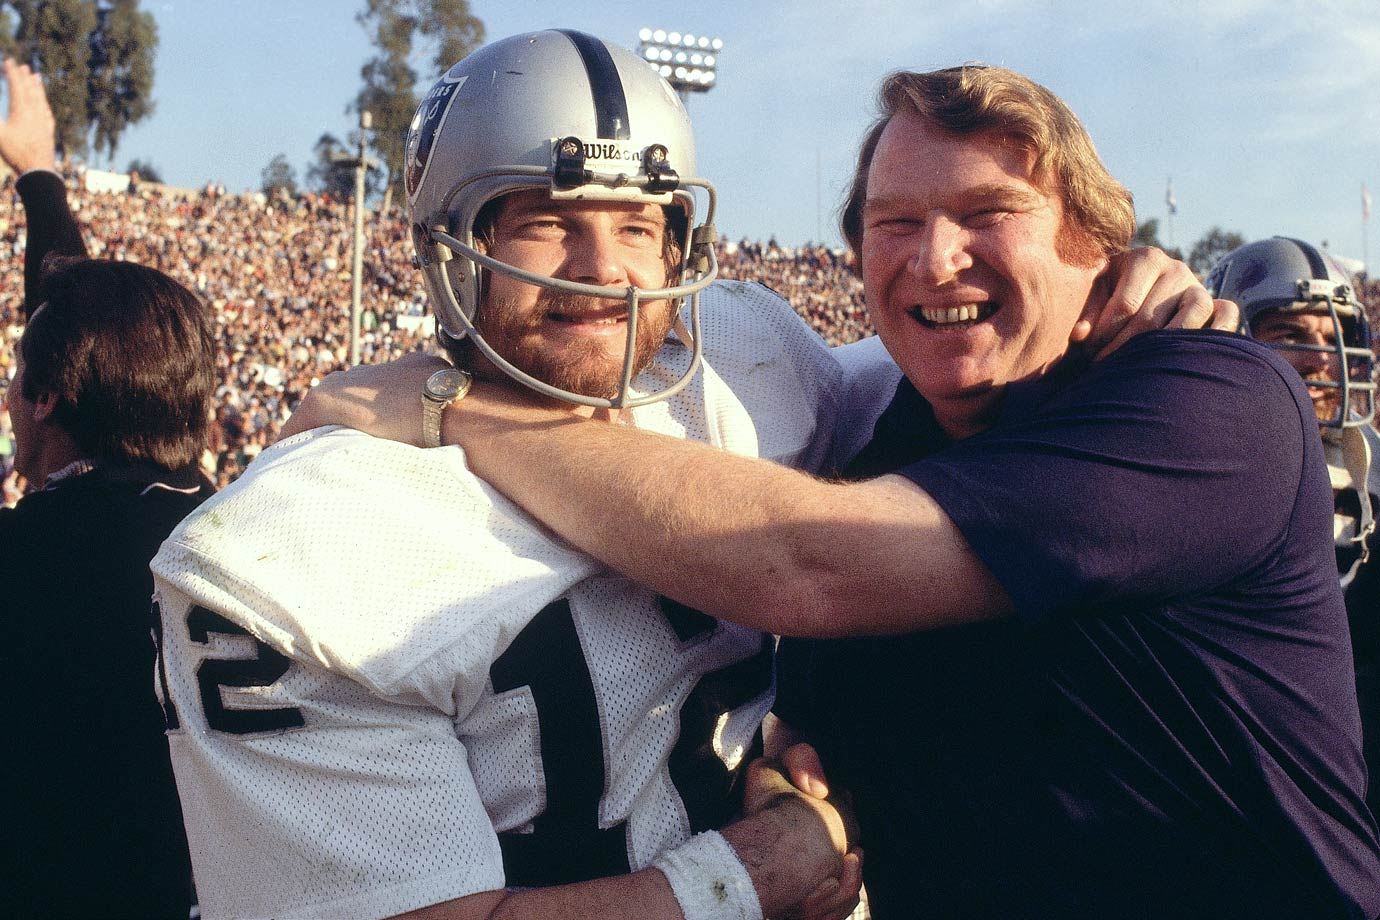 SI's best pictures of former NFL quarterback Kenny Stabler, who died July 8, 2015. He and coach John Madden, celebrating here shortly after defeating Minnesota in Super Bowl XI, are among the greatest figures in Oakland Raiders history.